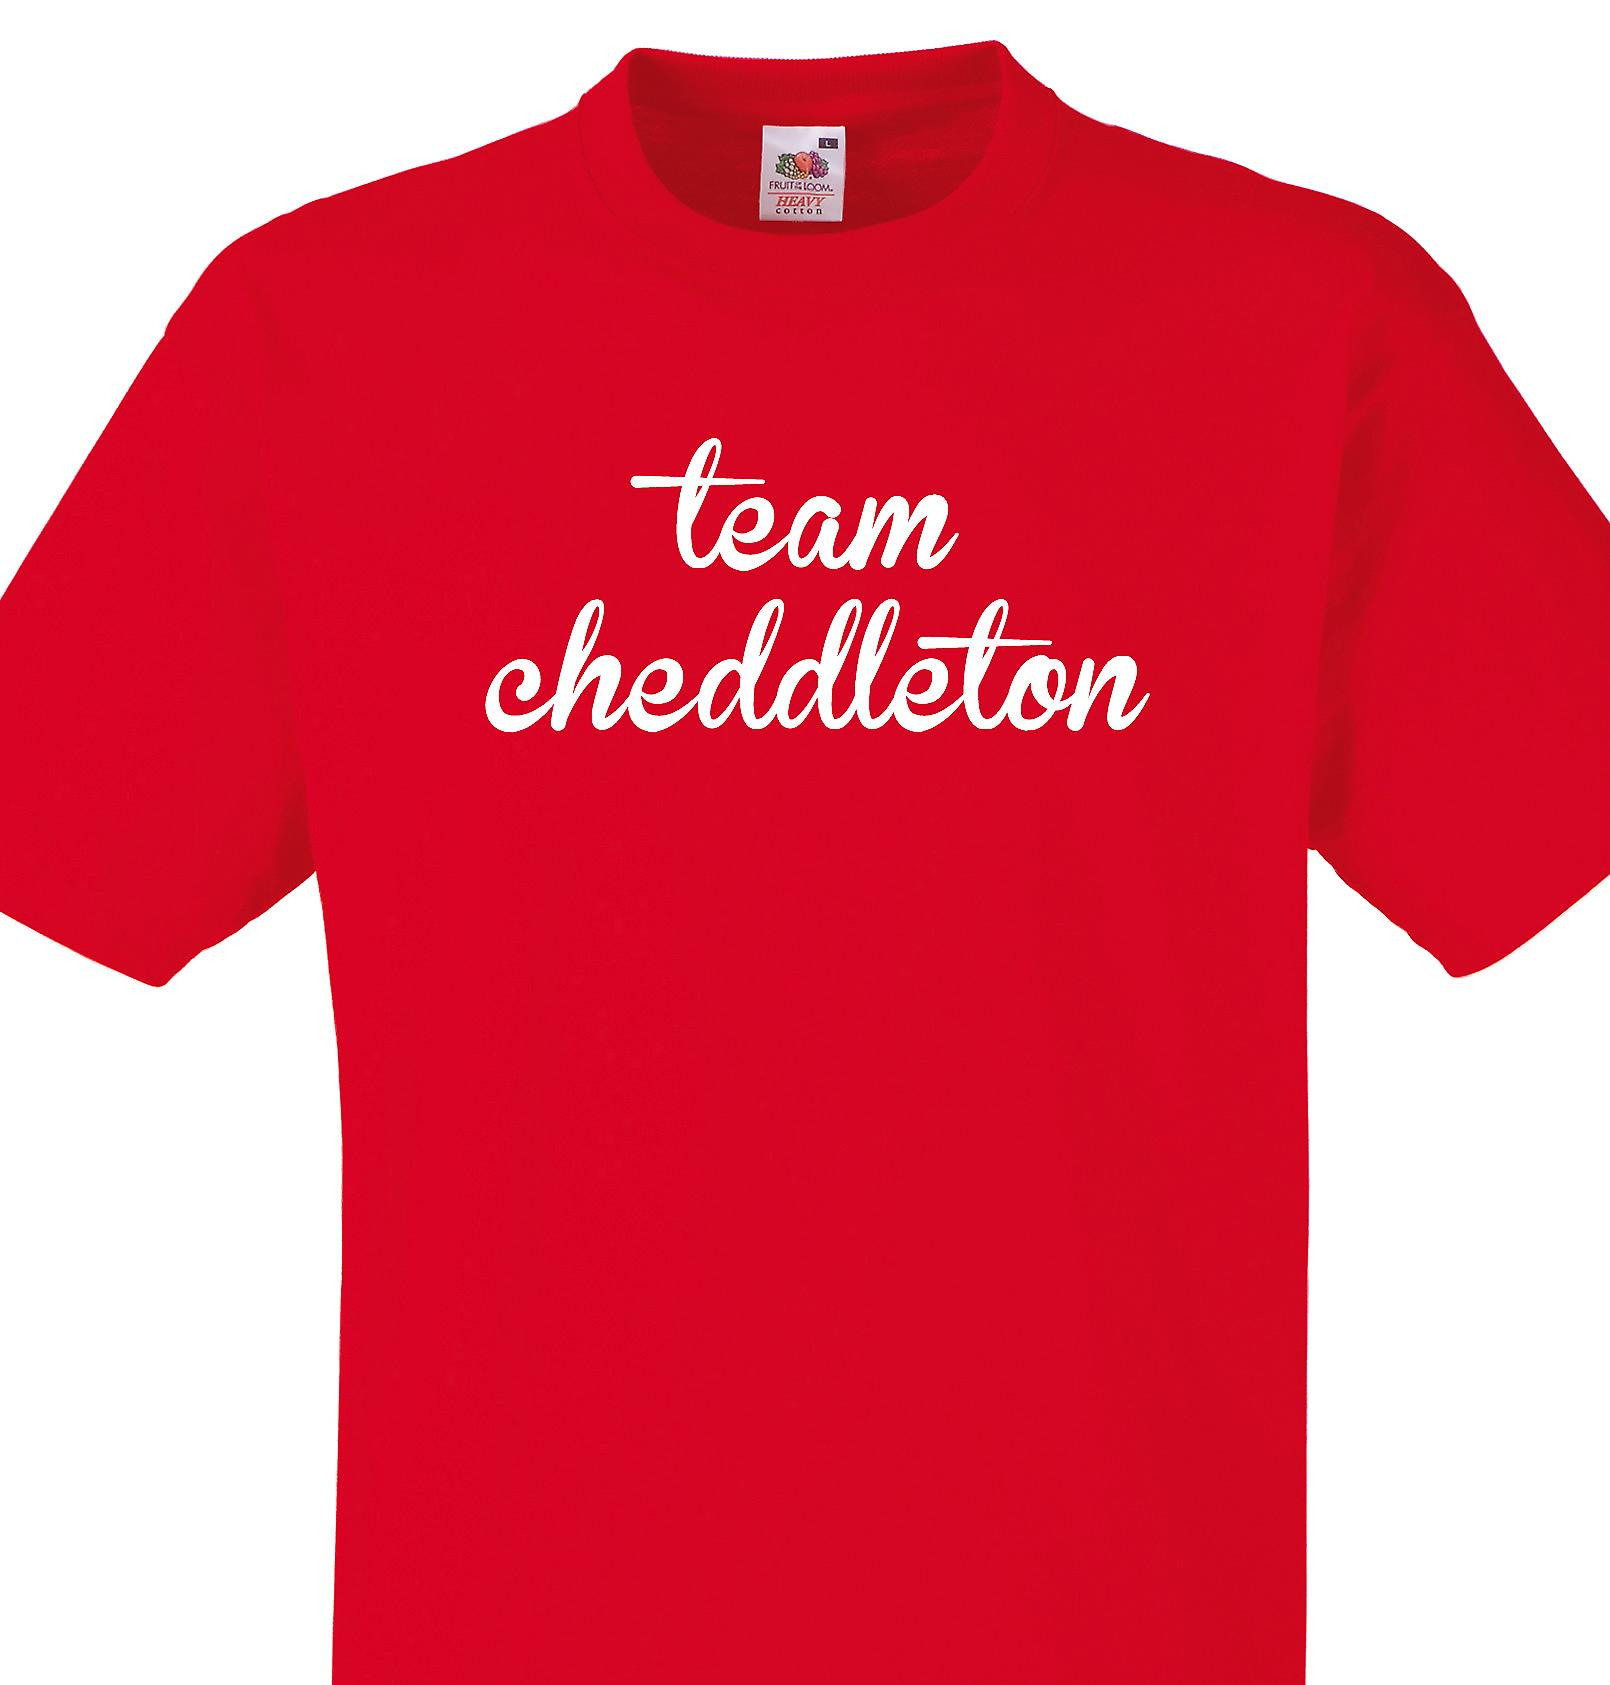 Team Cheddleton Red T shirt